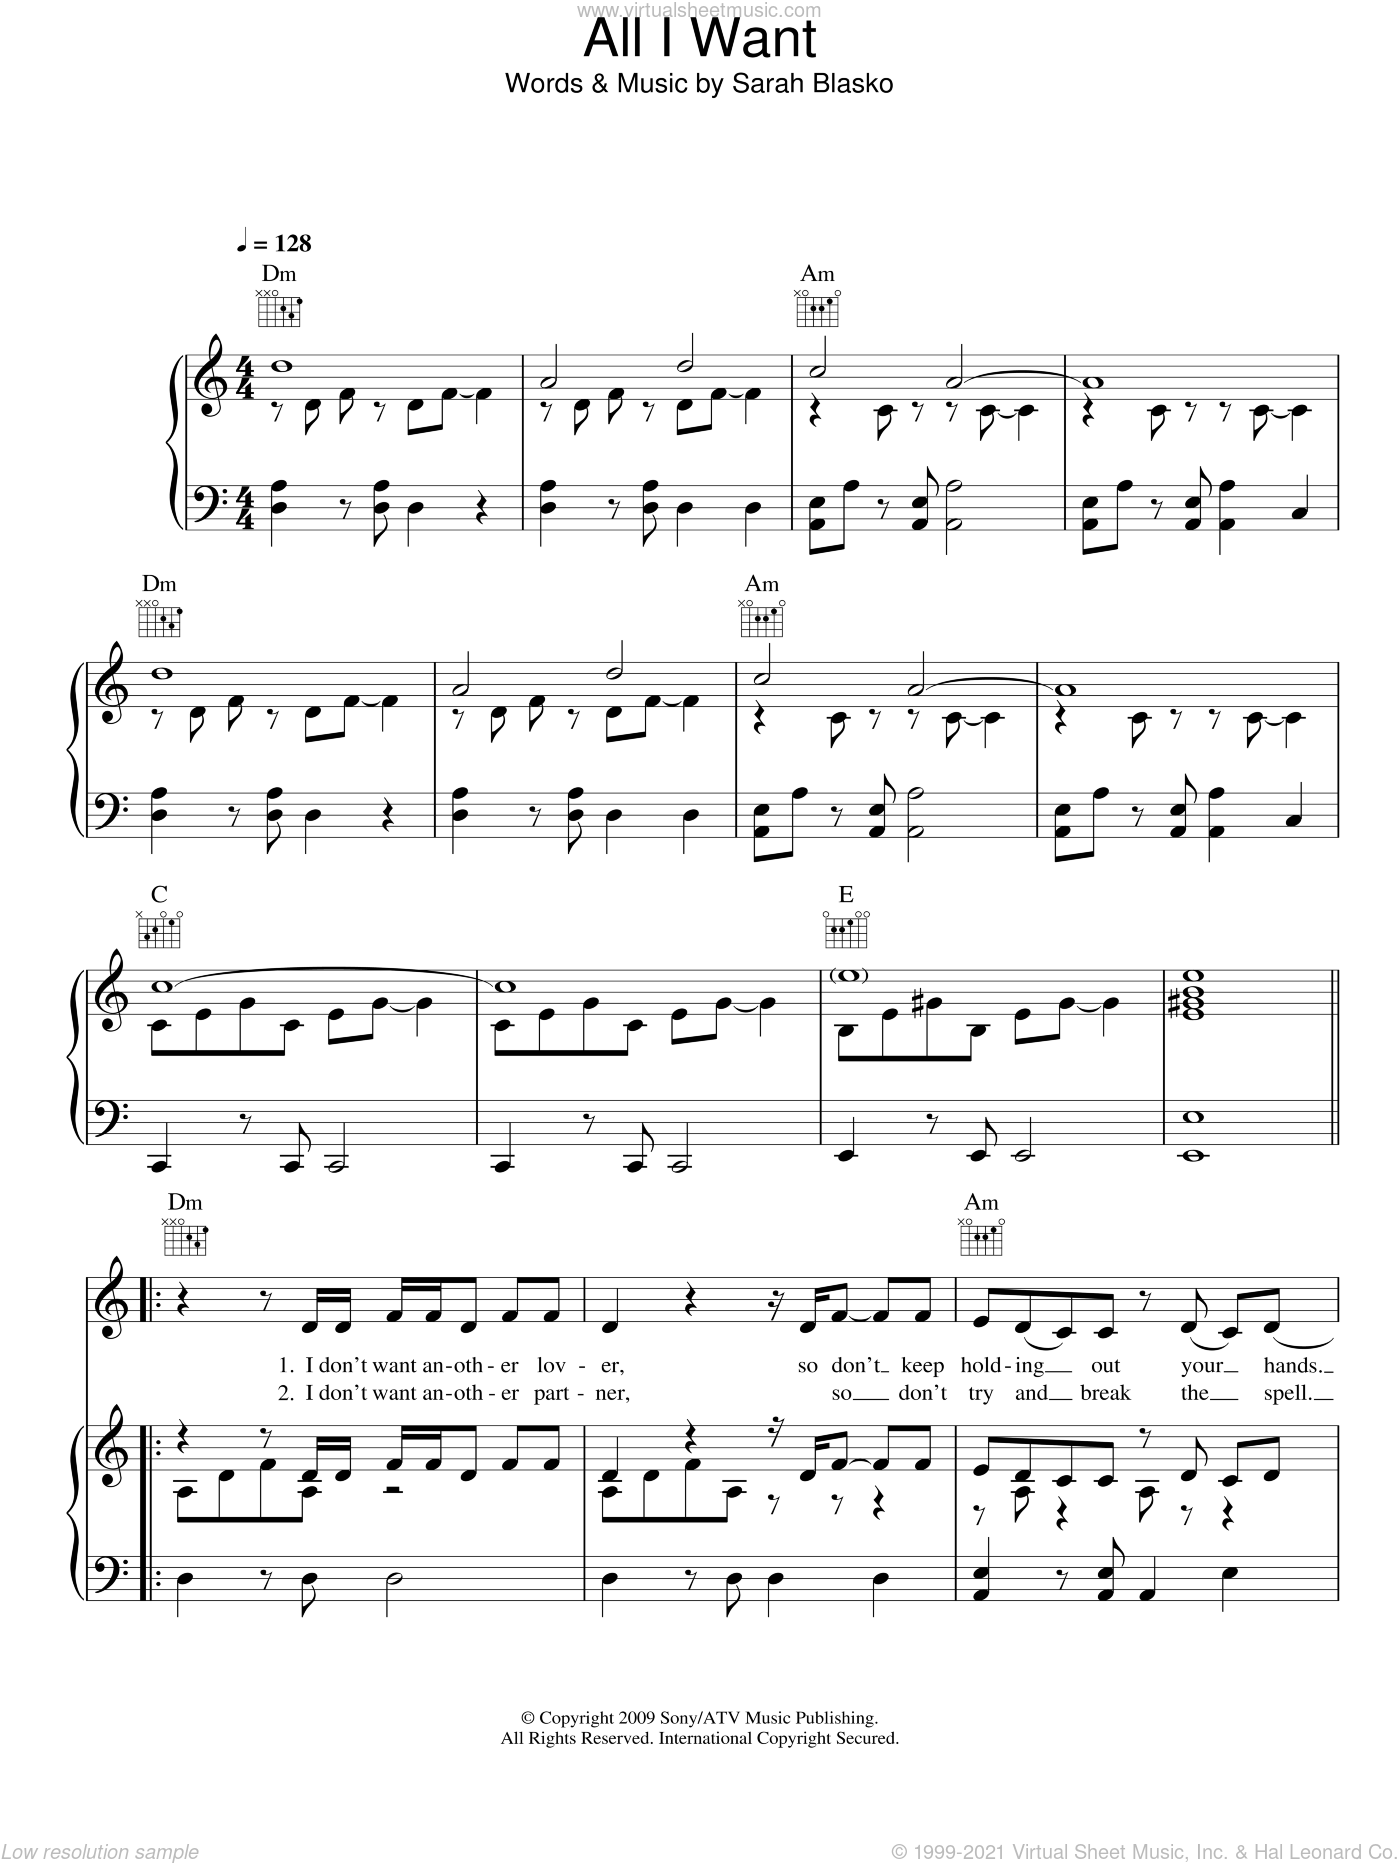 All I Want sheet music for voice, piano or guitar by Sarah Blasko. Score Image Preview.